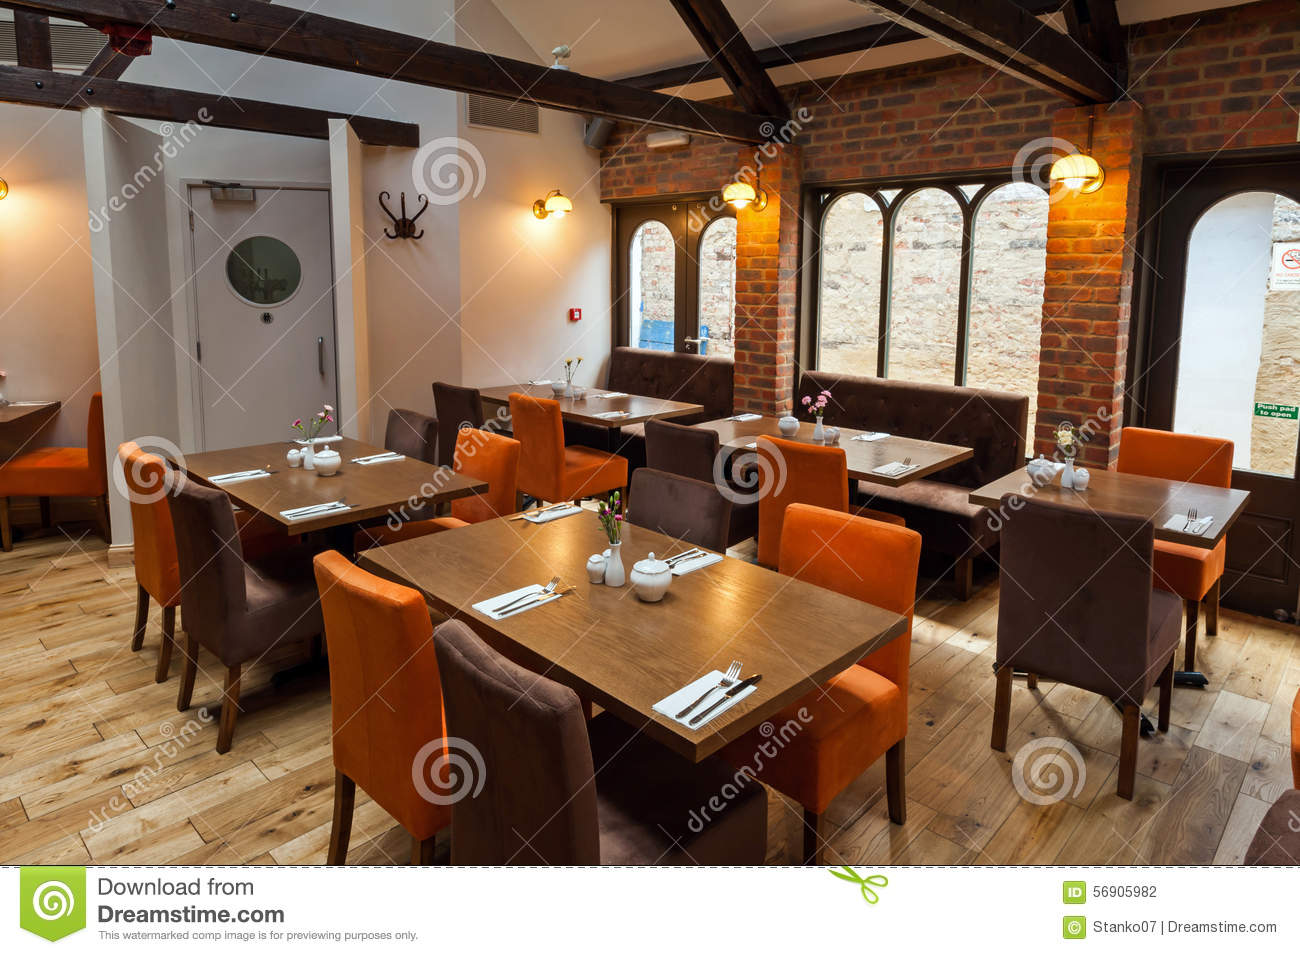 restaurant interior stock photo - image: 56905982